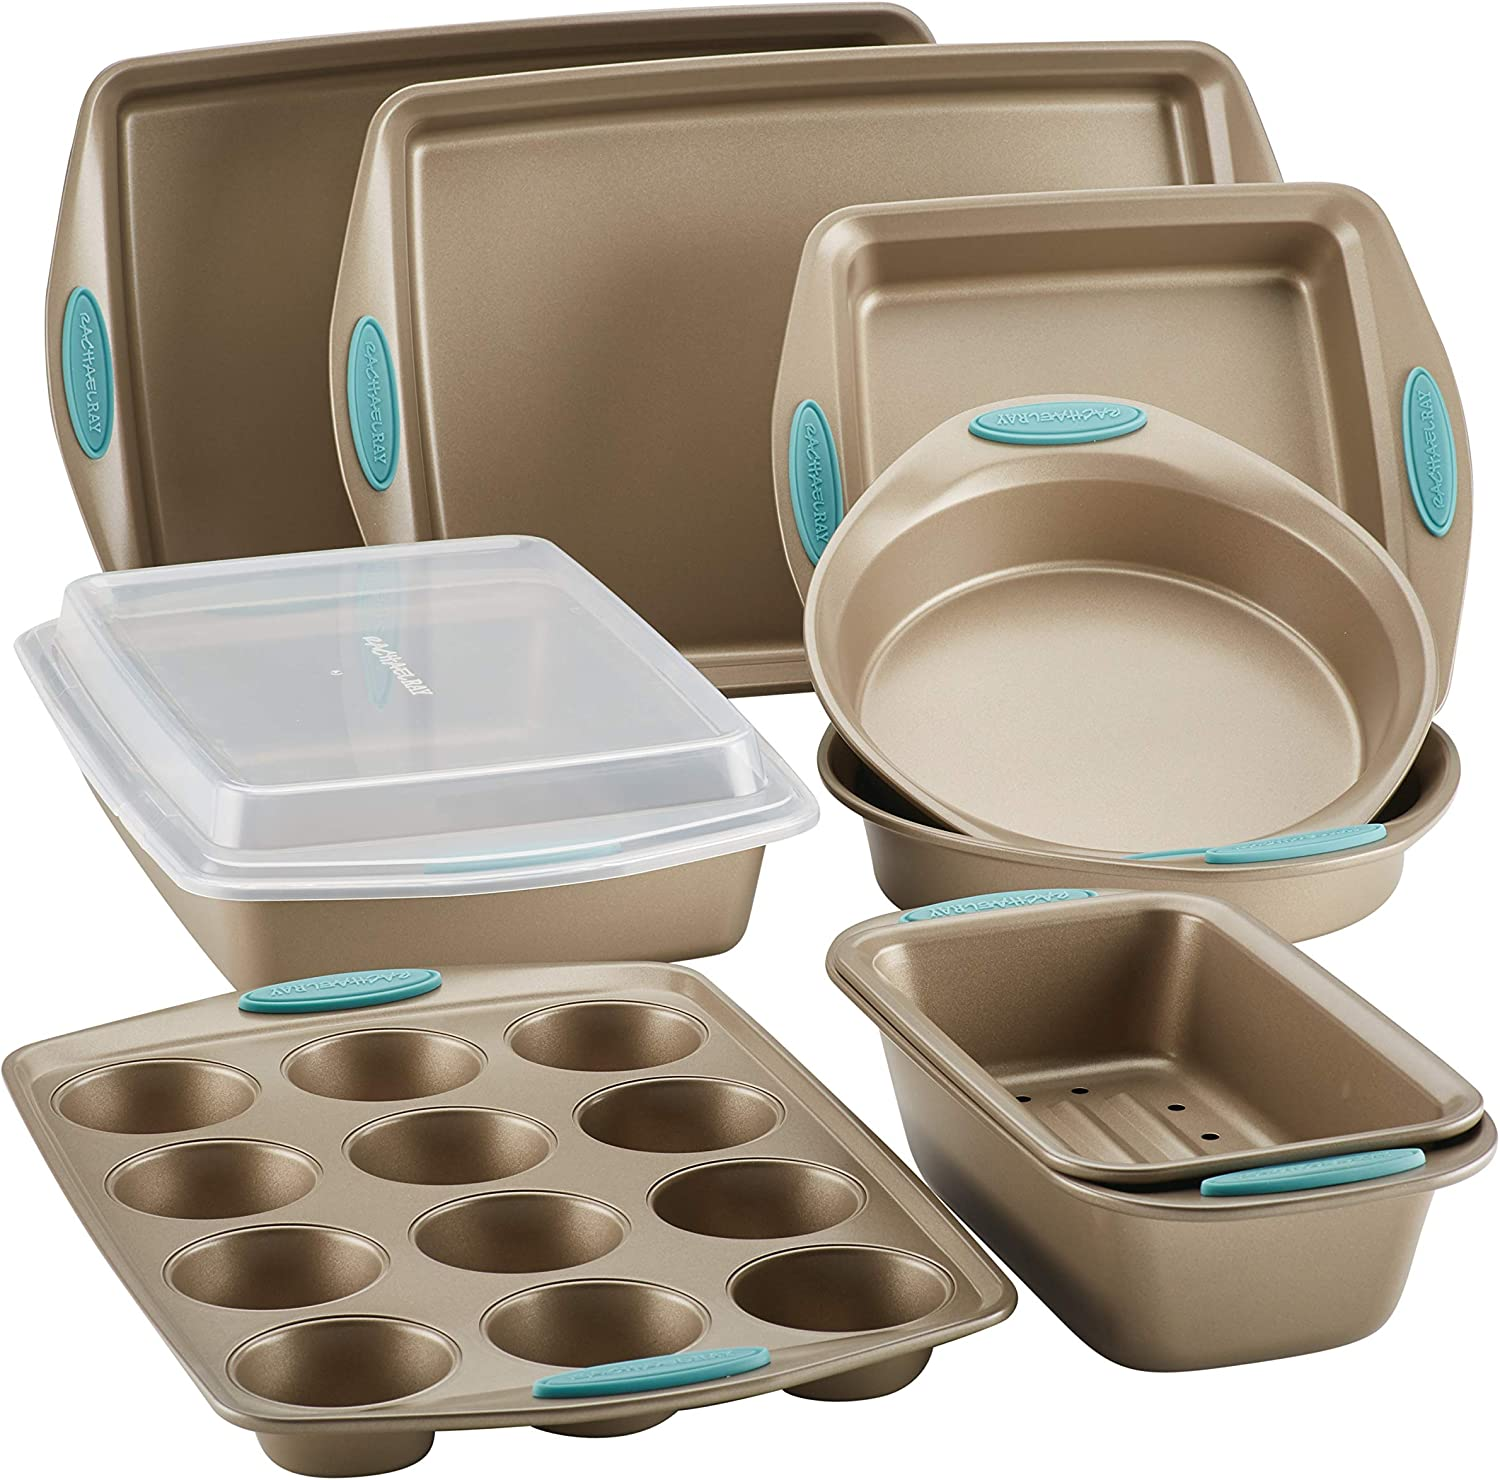 Nonstick Bakeware Set with Grips